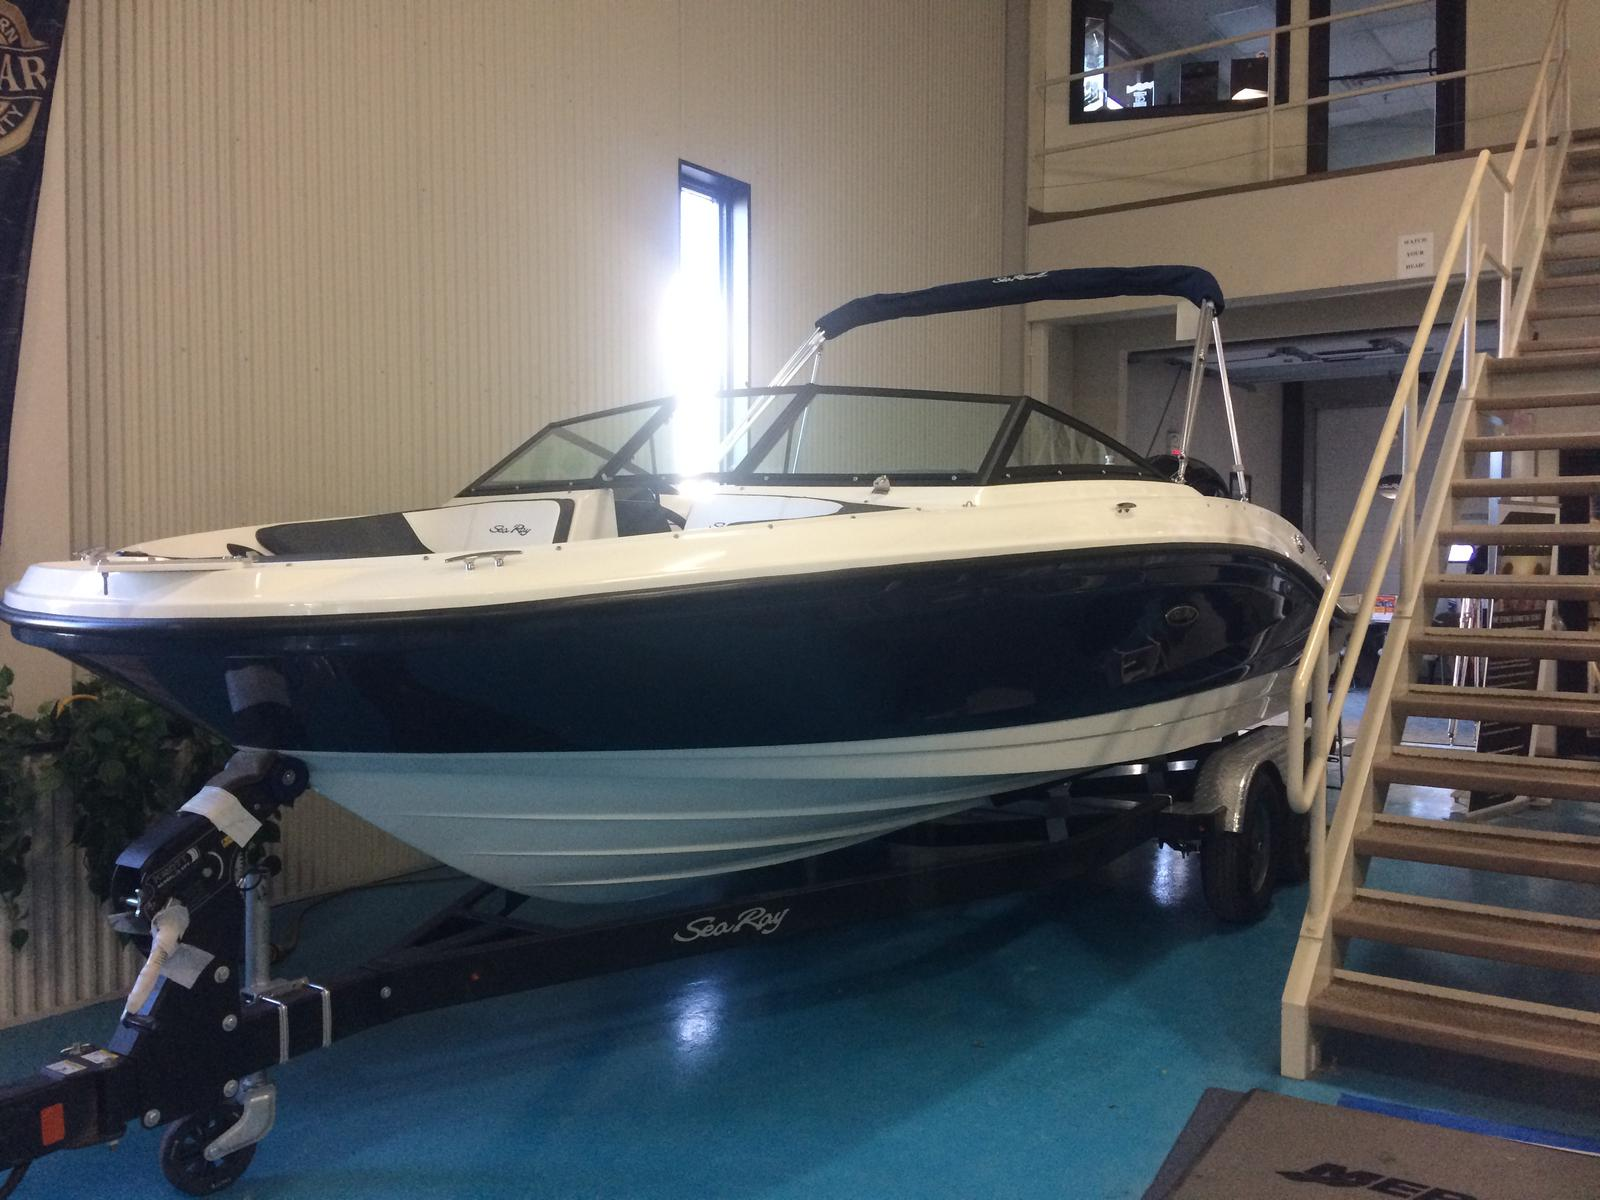 New 2018 Sea Ray 21 SPO - Hutchinson's Boat Works